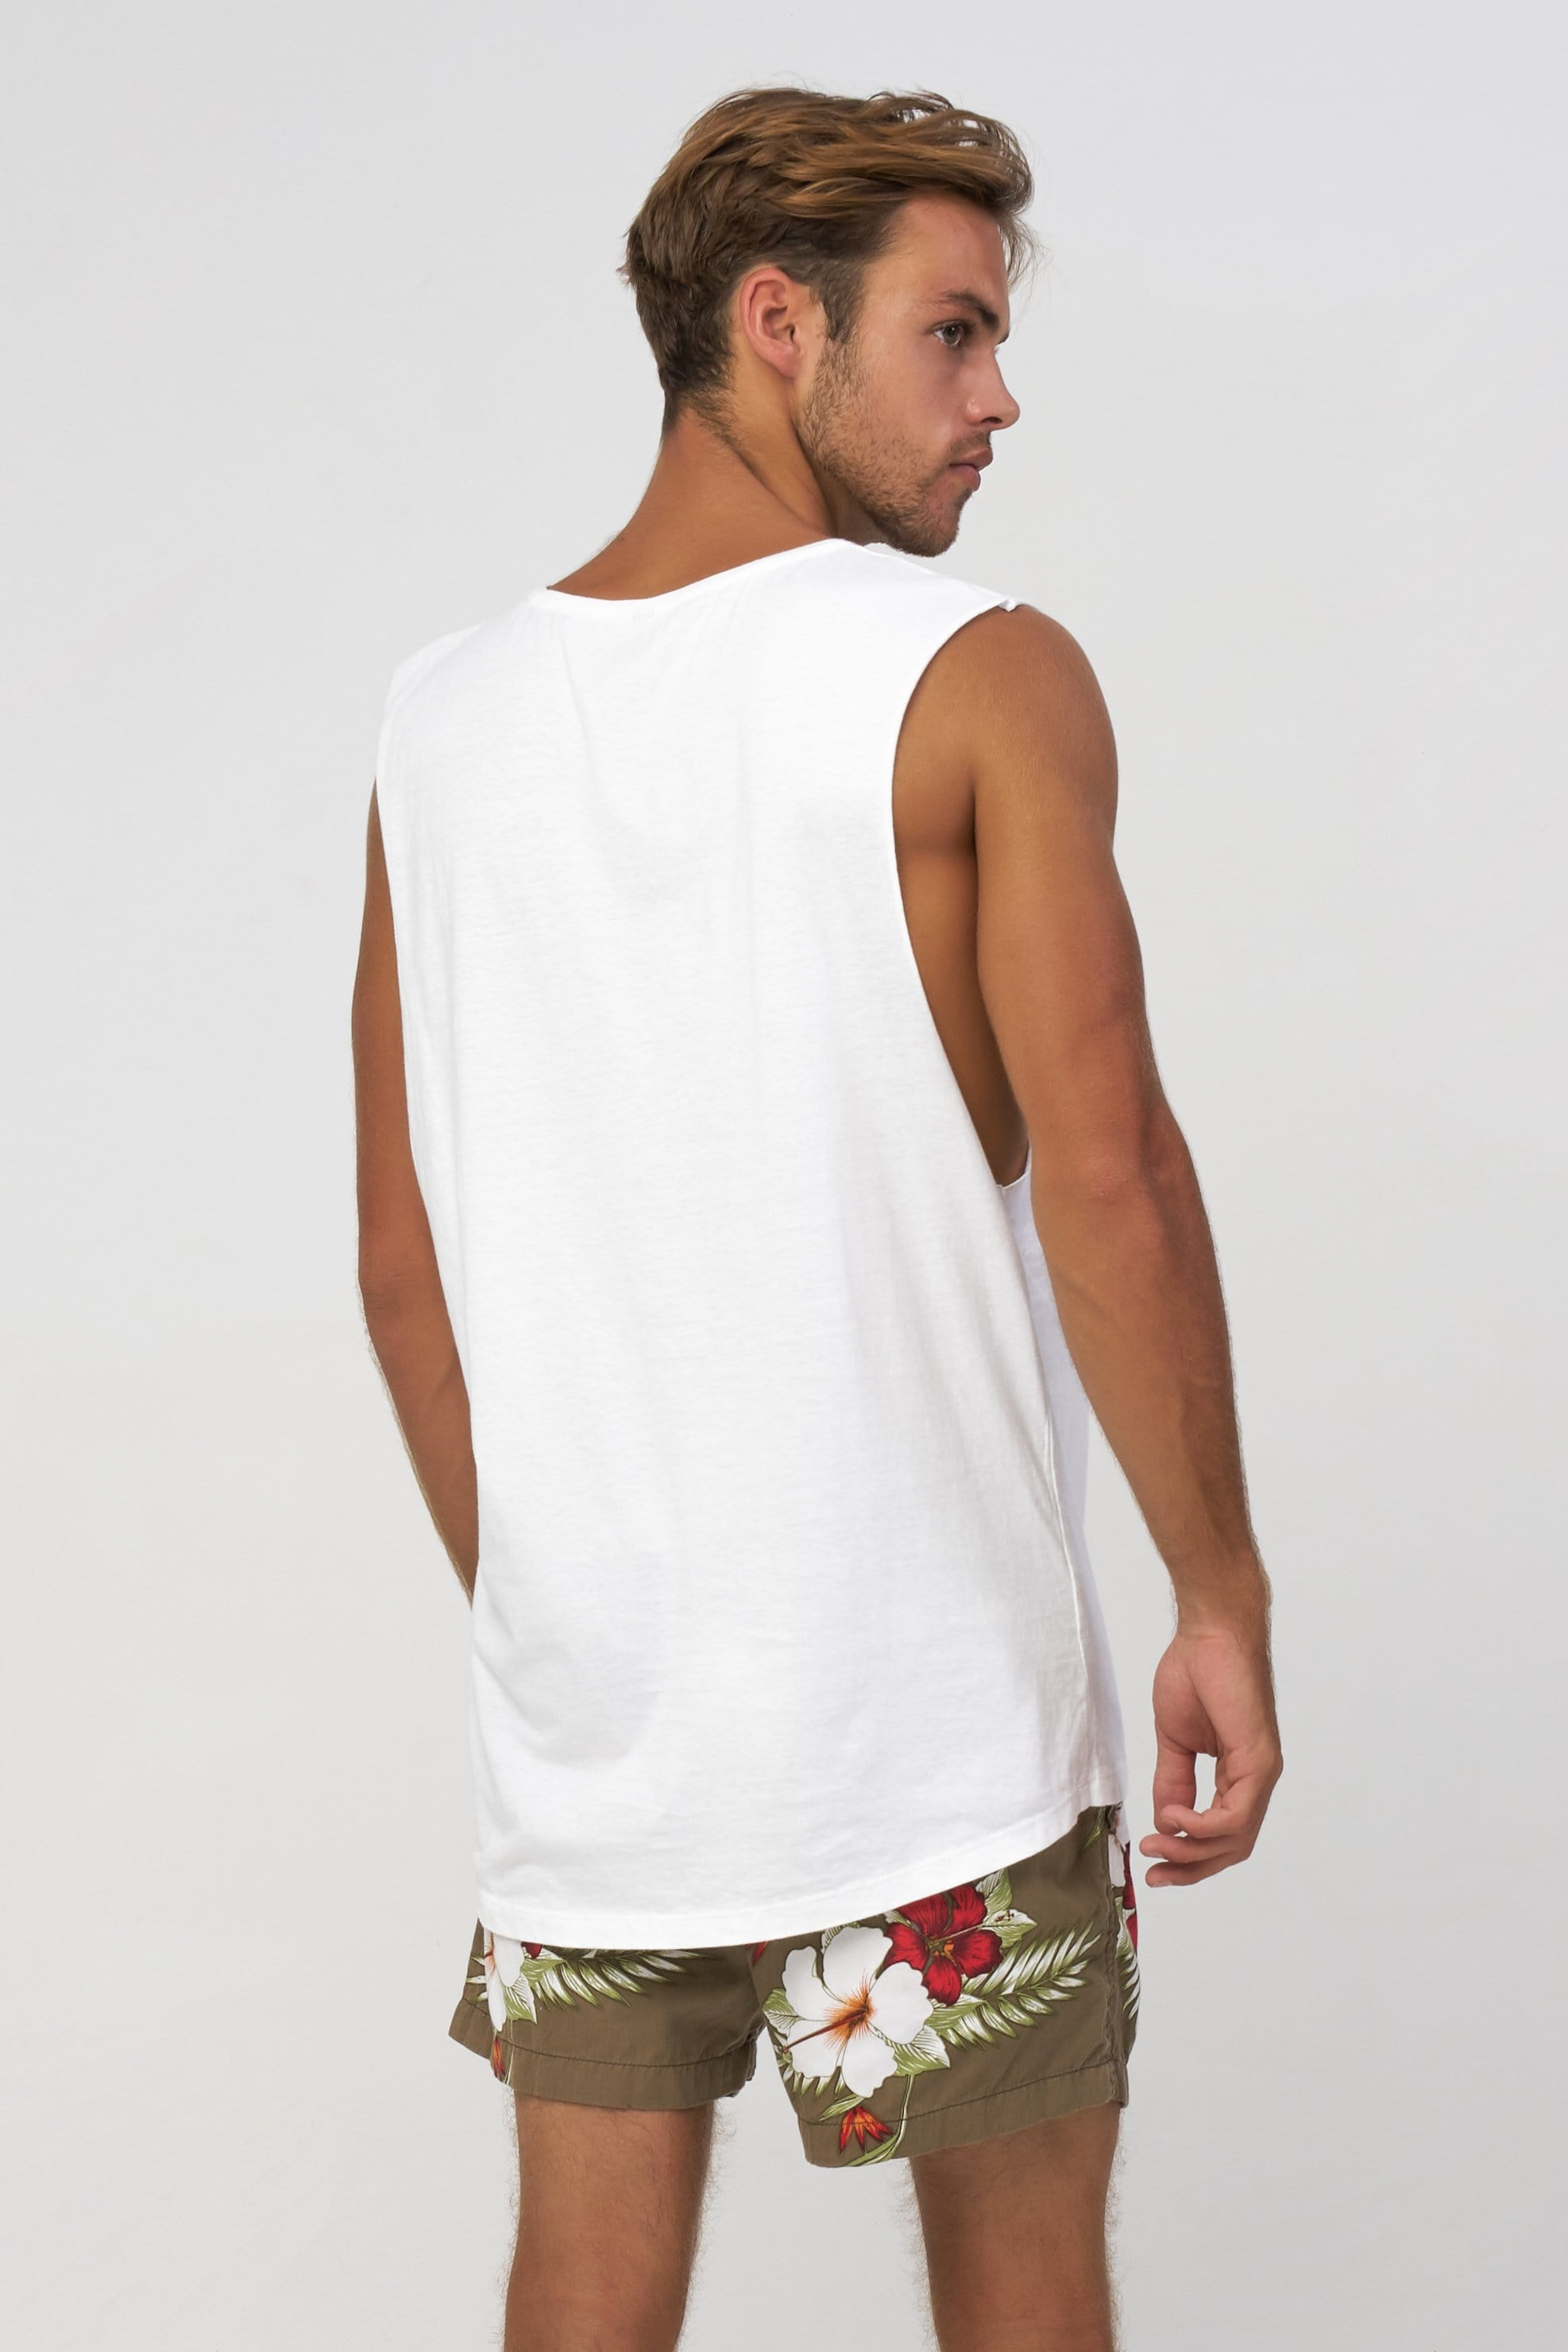 Sm Square Lost - Mens Muscle Tank - LOST IN PARADISE